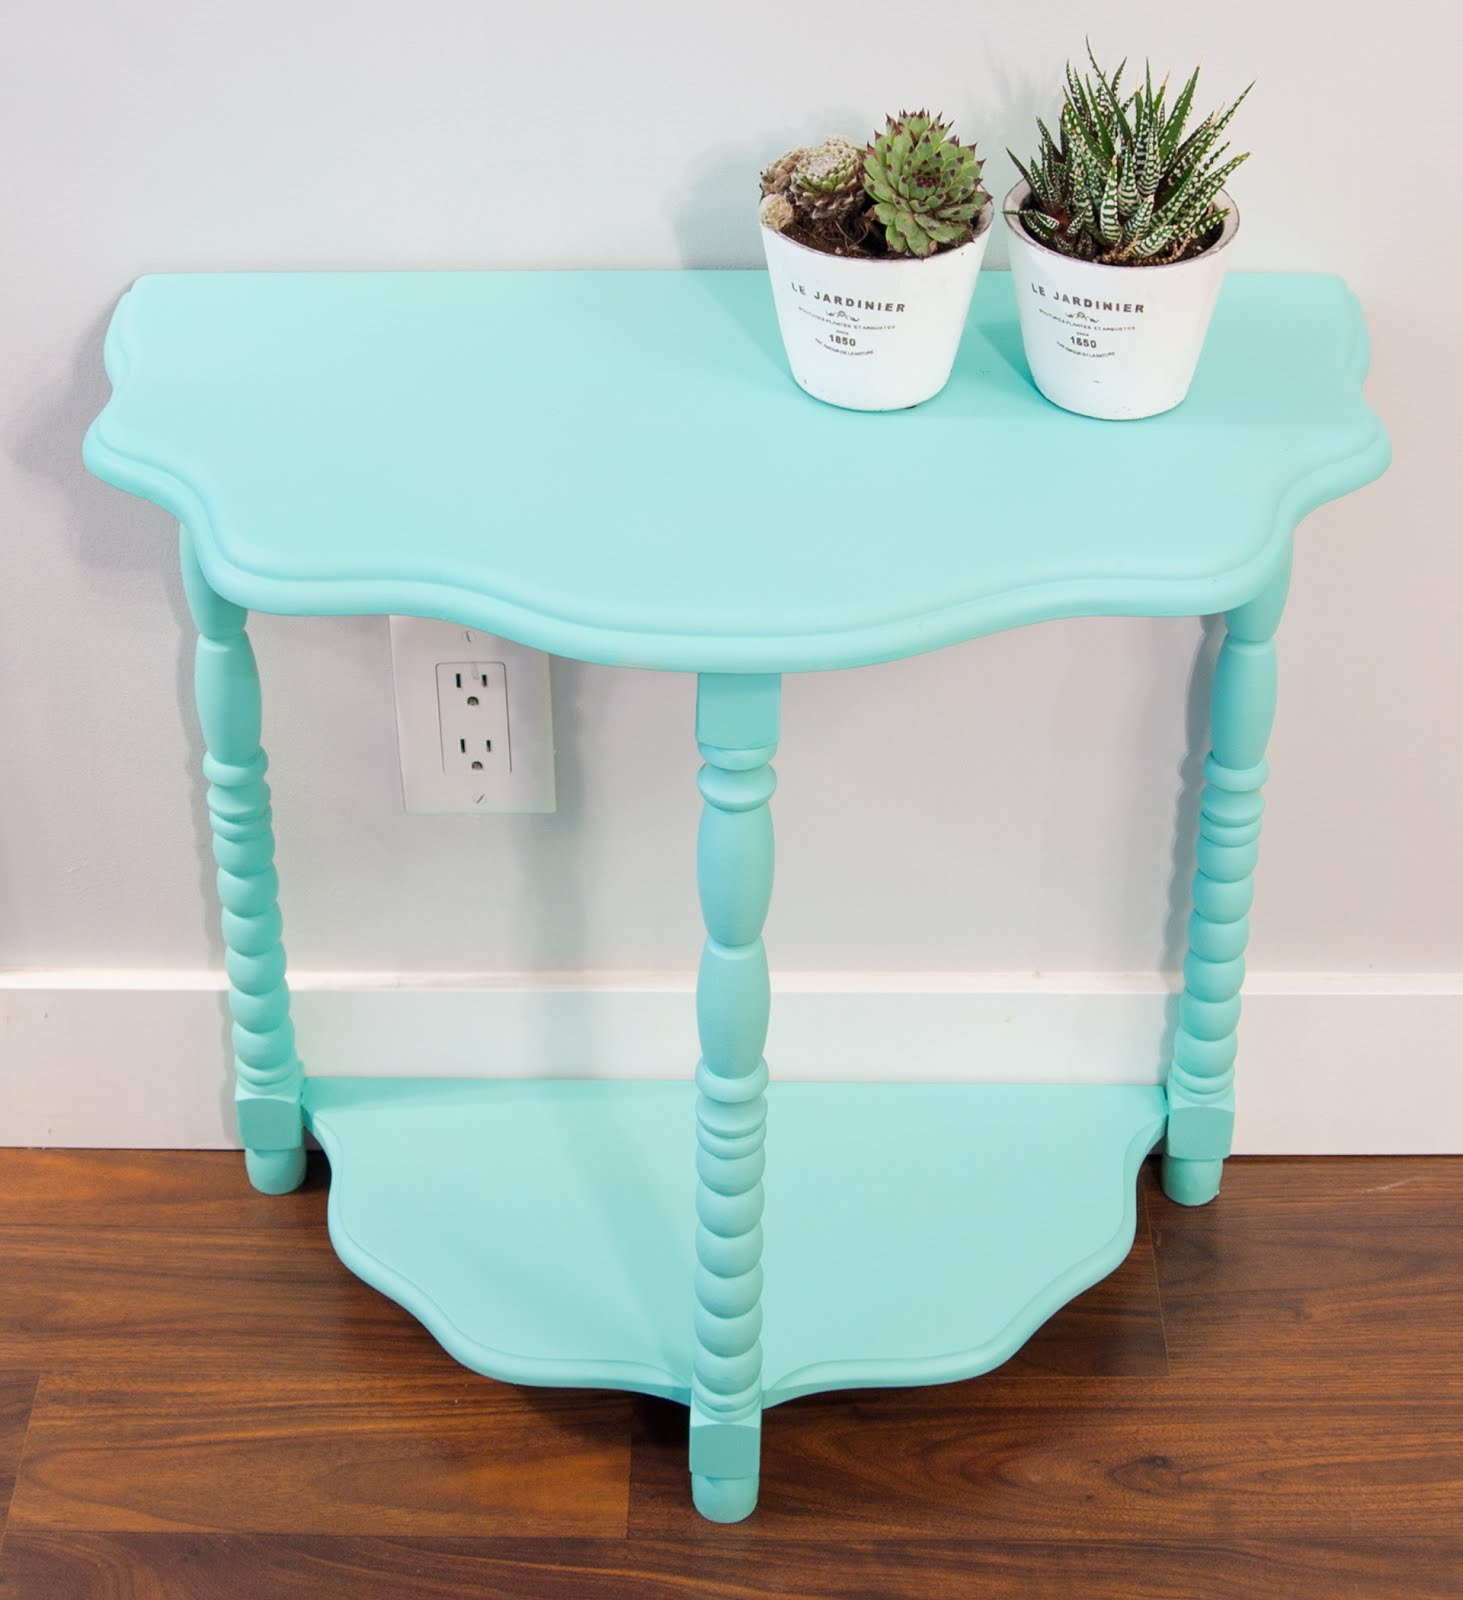 Teal spray painted table